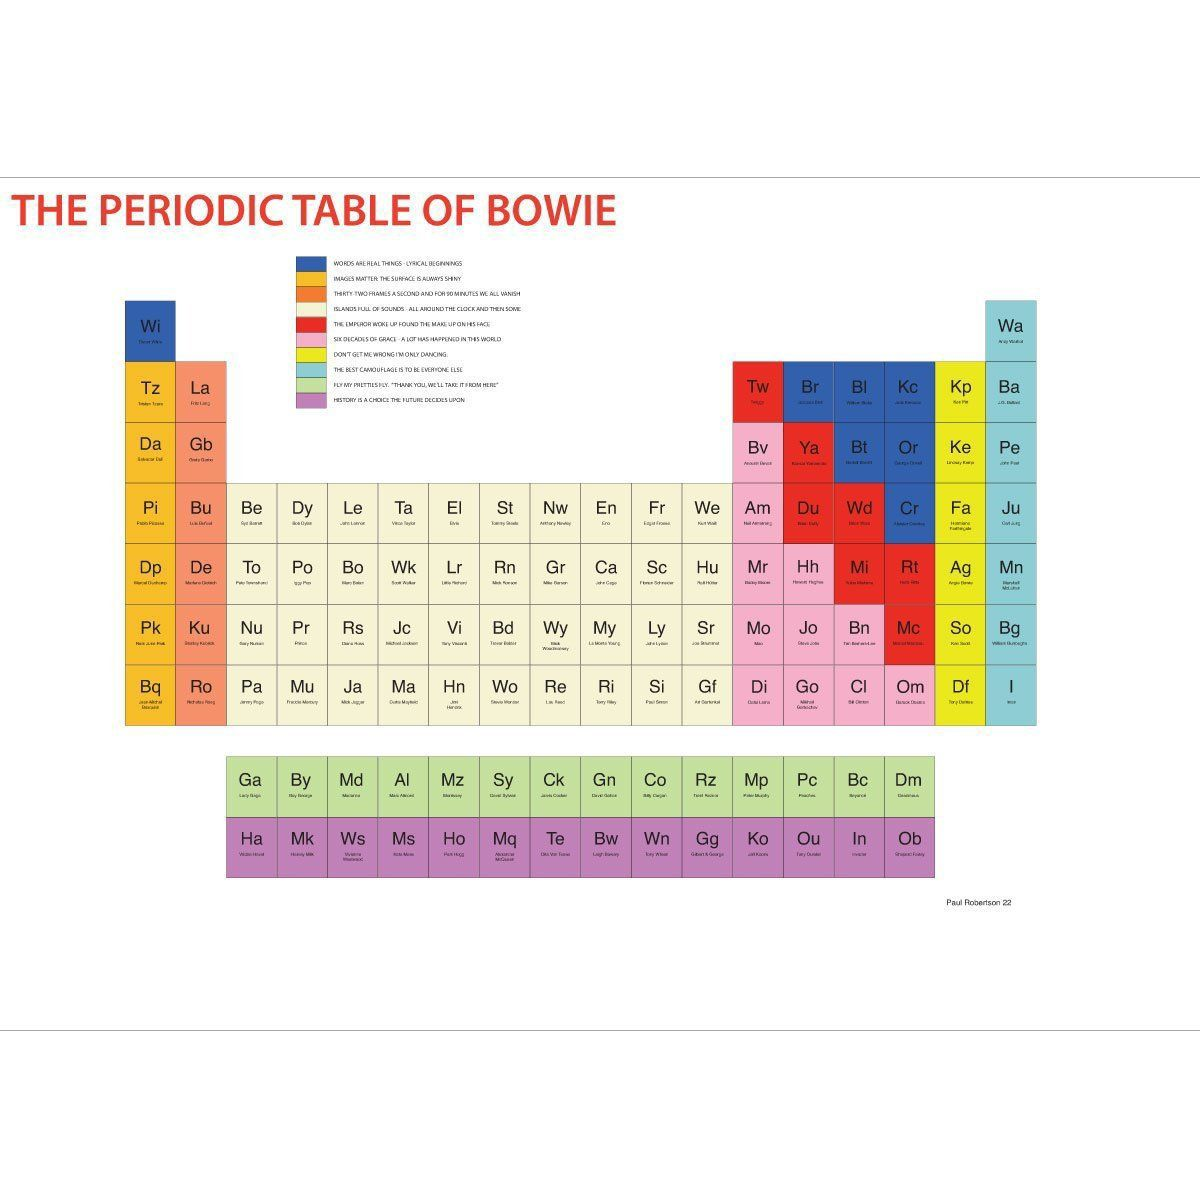 The periodic table of bowie david bowie isfan art pinterest periodic table urtaz Image collections